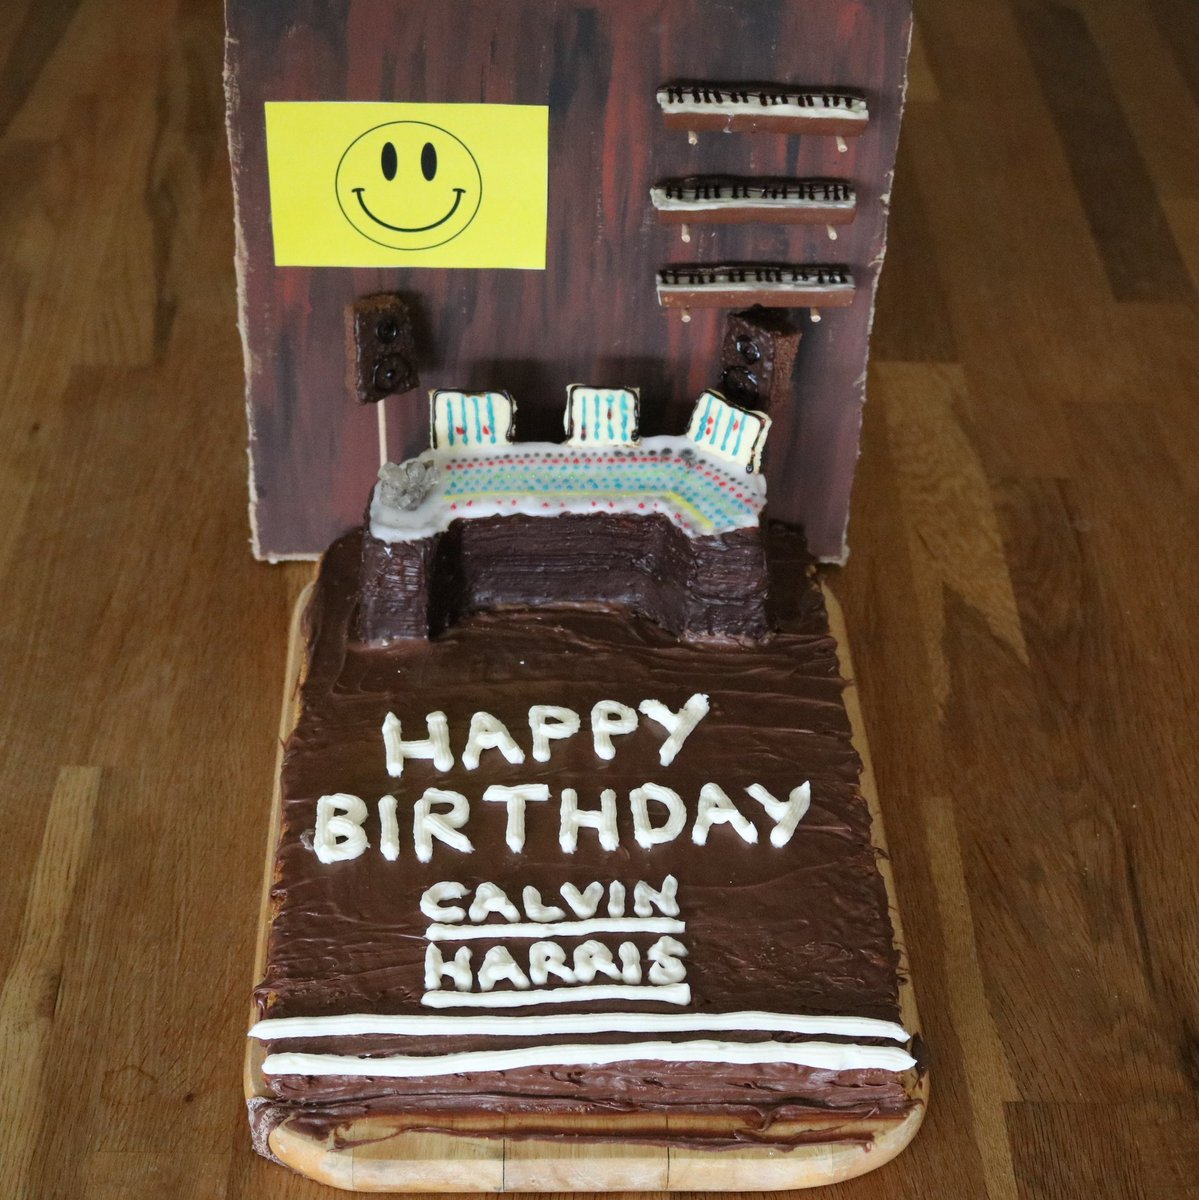 Happy birthday @CalvinHarris!!! 🎂🎉